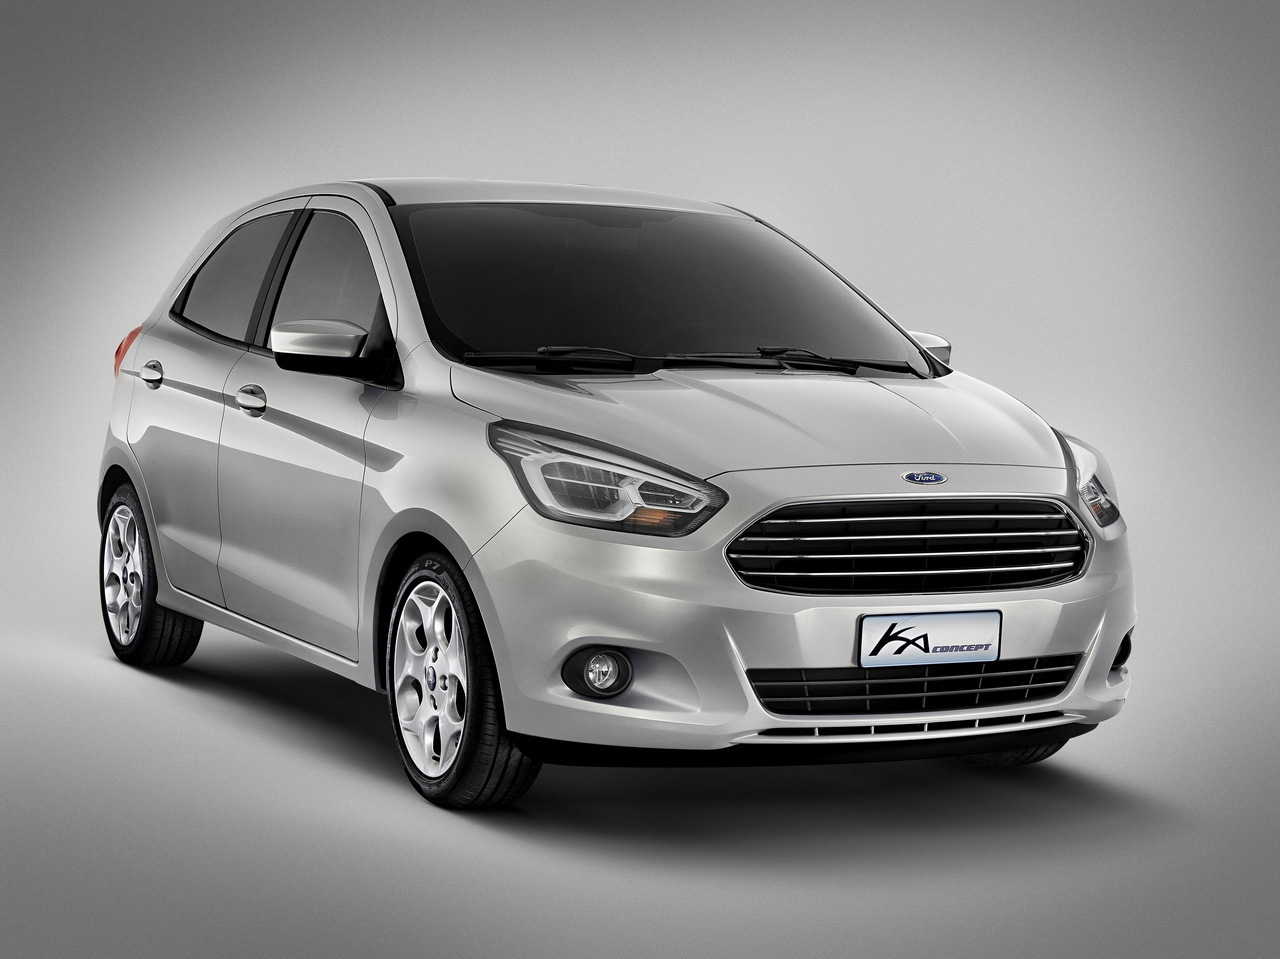 la nouvelle ford ka arrivera en 2015. Black Bedroom Furniture Sets. Home Design Ideas